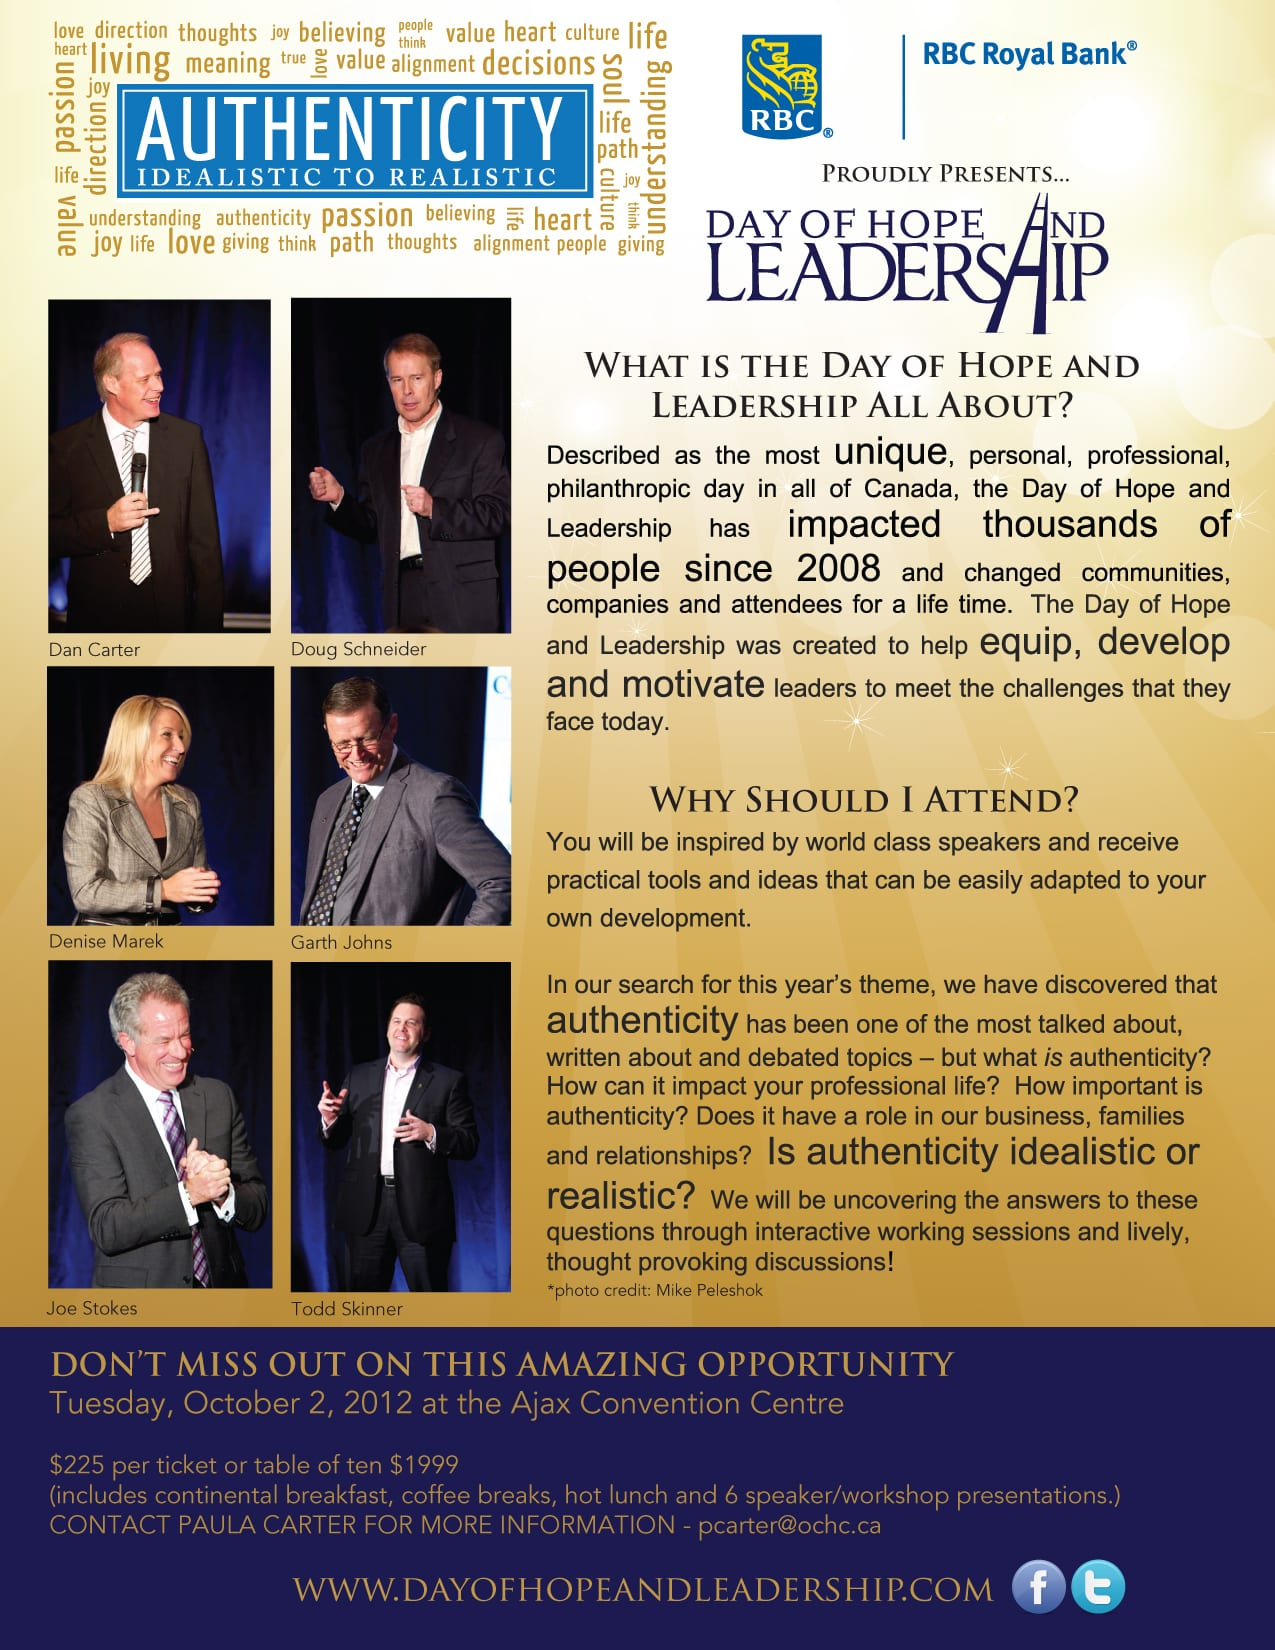 Day of Hope & Leadership poster and link